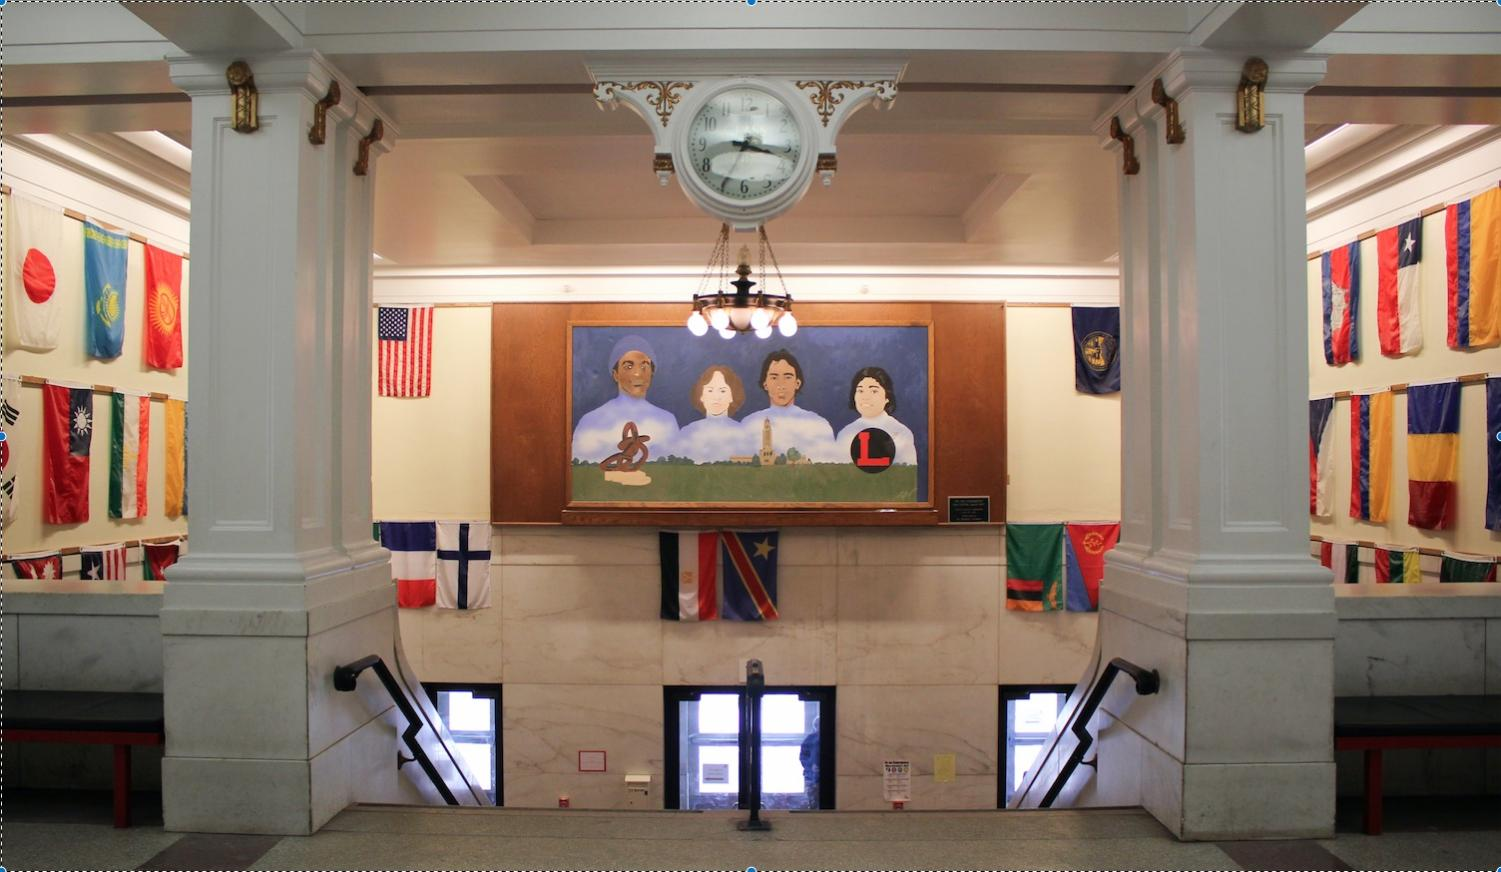 The entrance of Lincoln High School features flags and a mural that represent the school's diversity. Photo by Sara Balter.